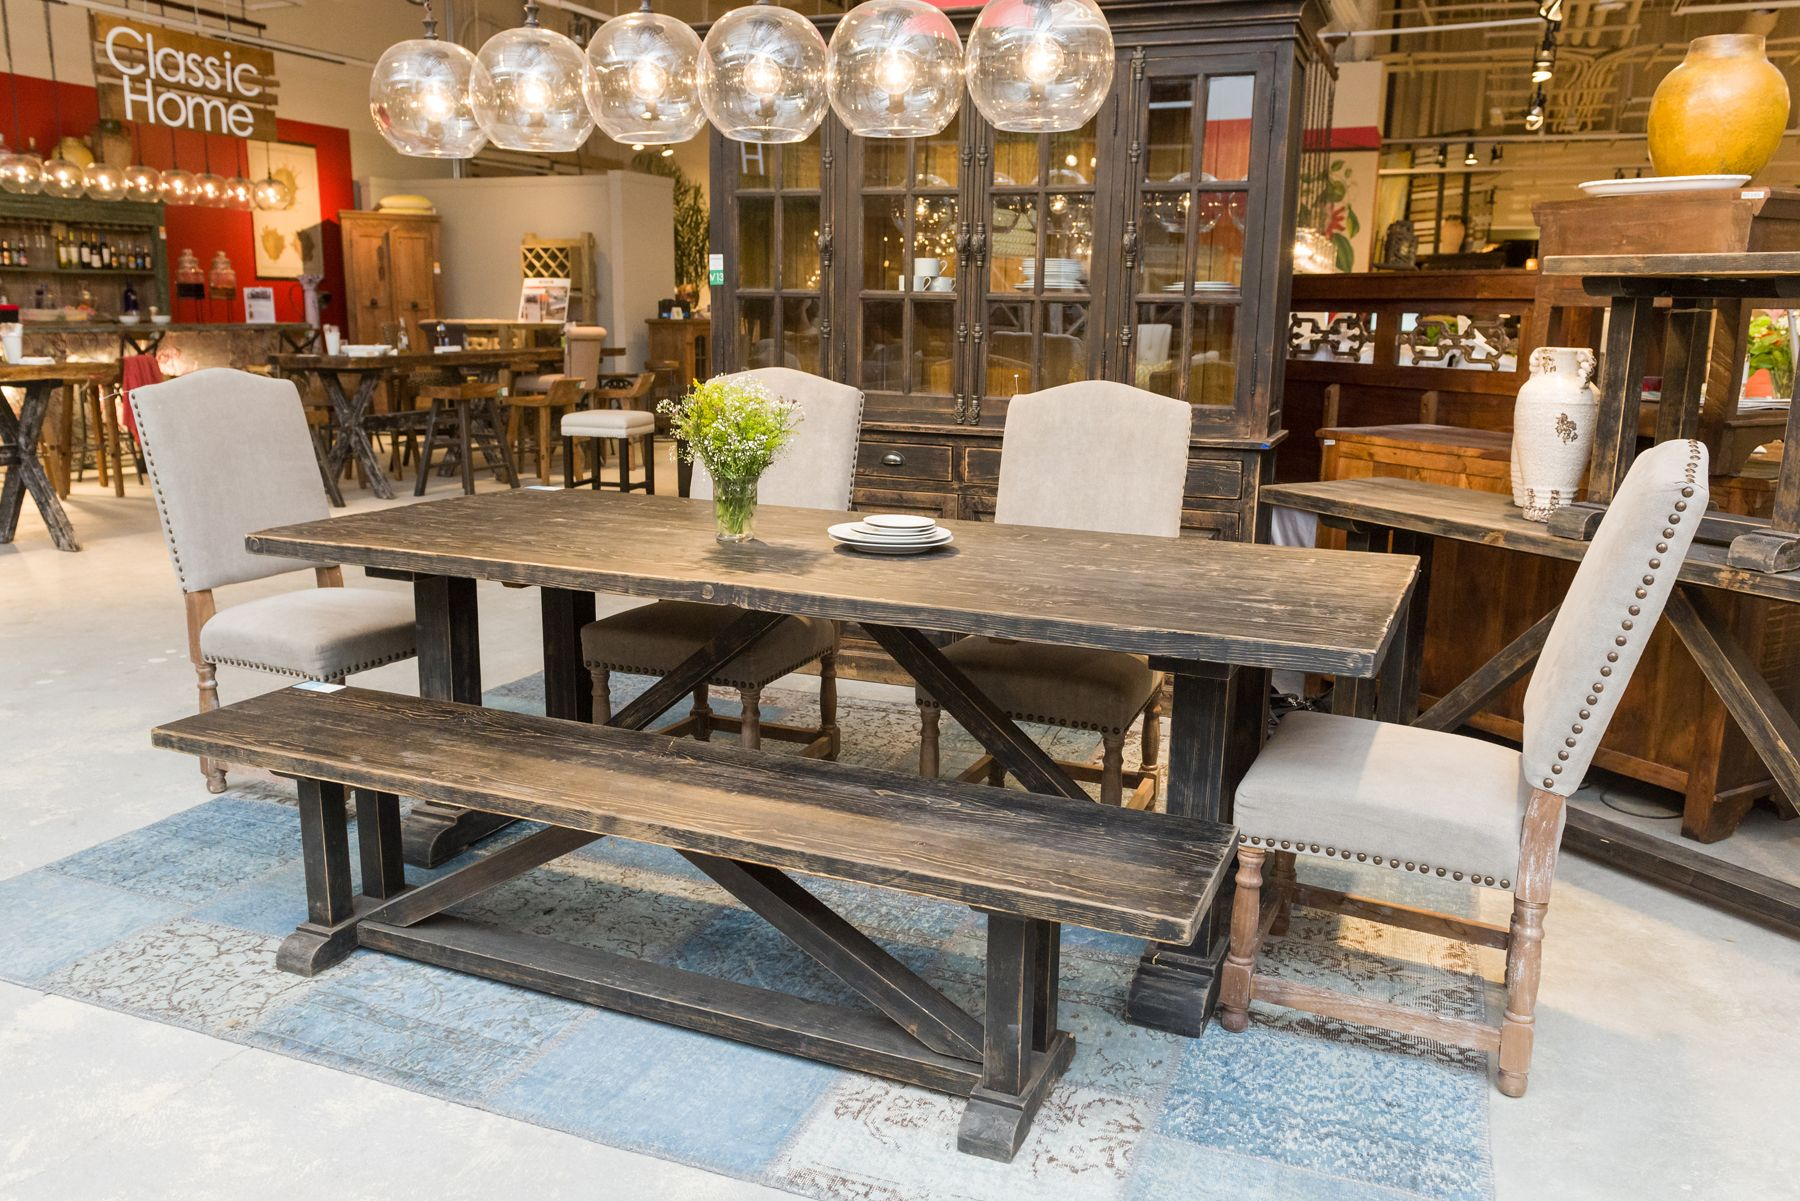 Hyland Dining Table from Classic Home as shown from Las